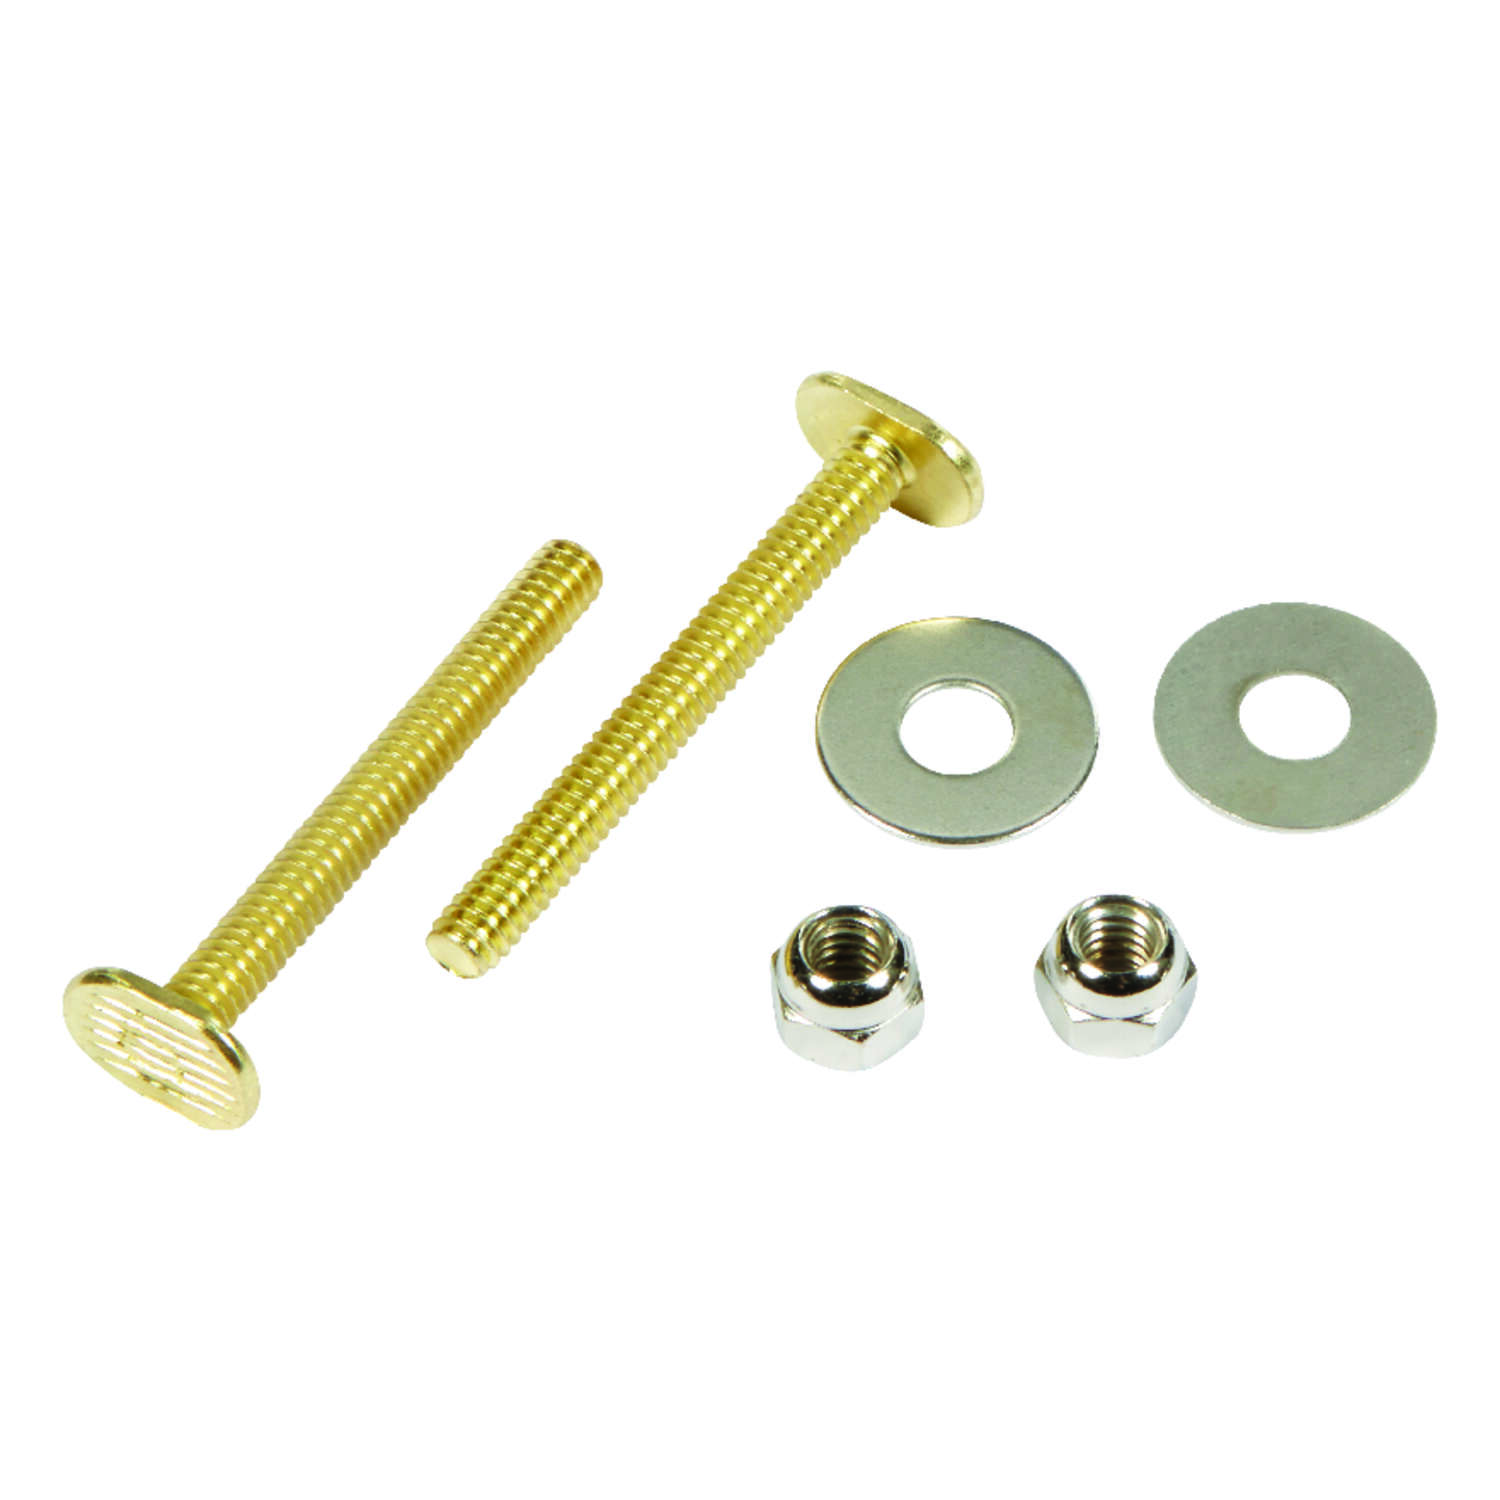 Ace  Toilet Bolt Set  1/4 in. H x 2-1/4 in. L Brass